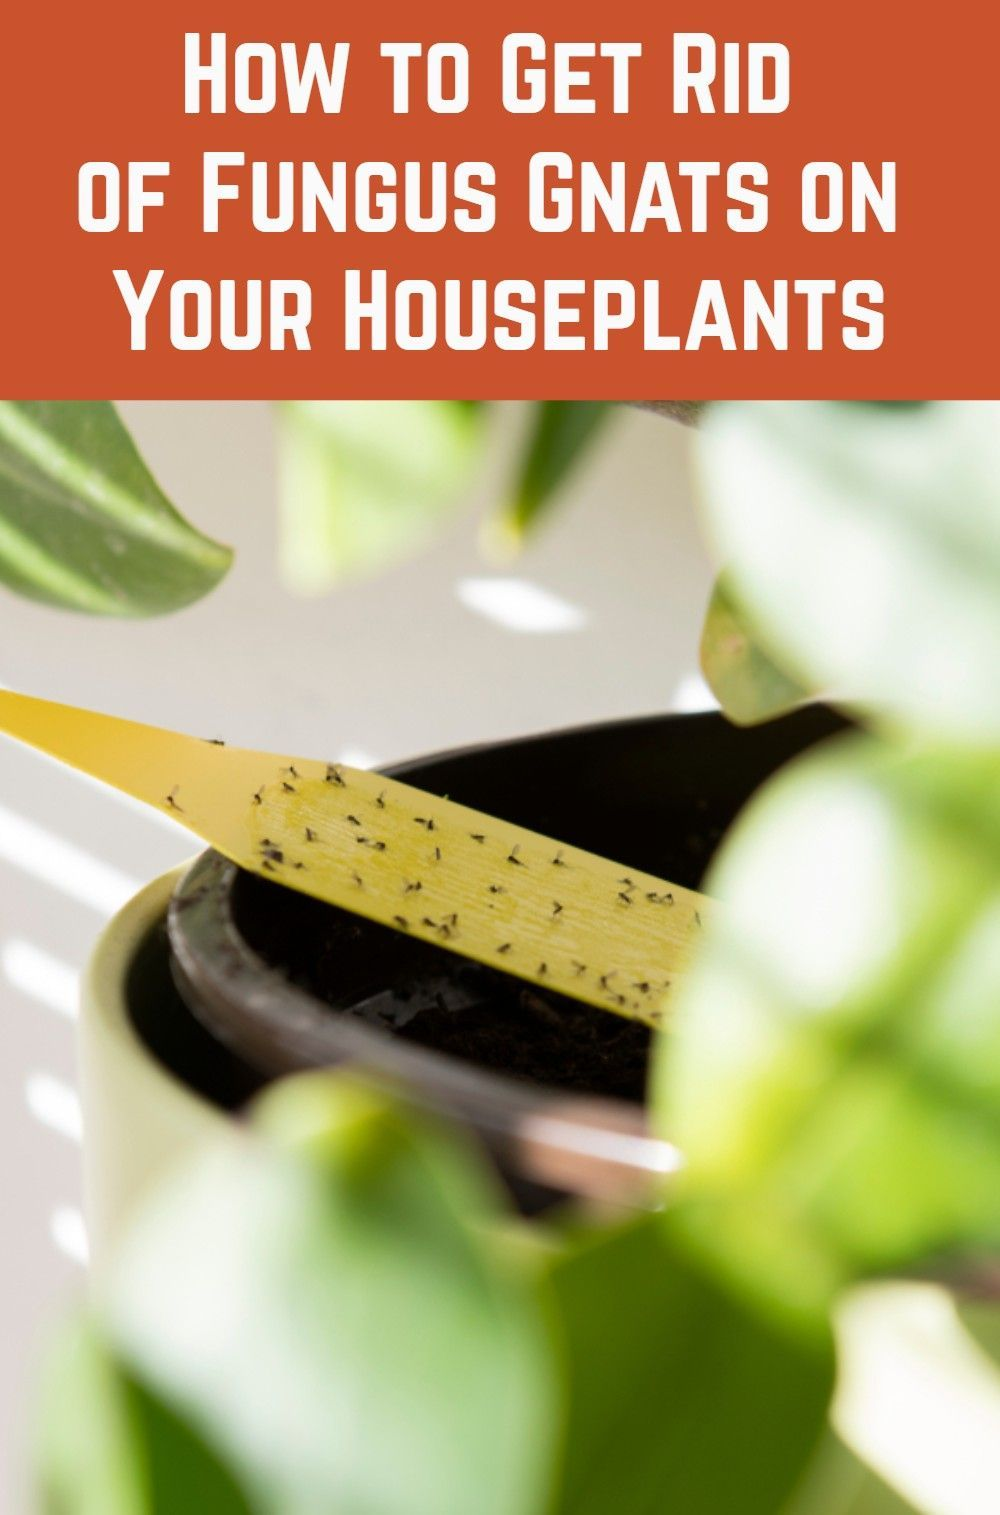 How to get rid of fungus gnats on your houseplants in 2020